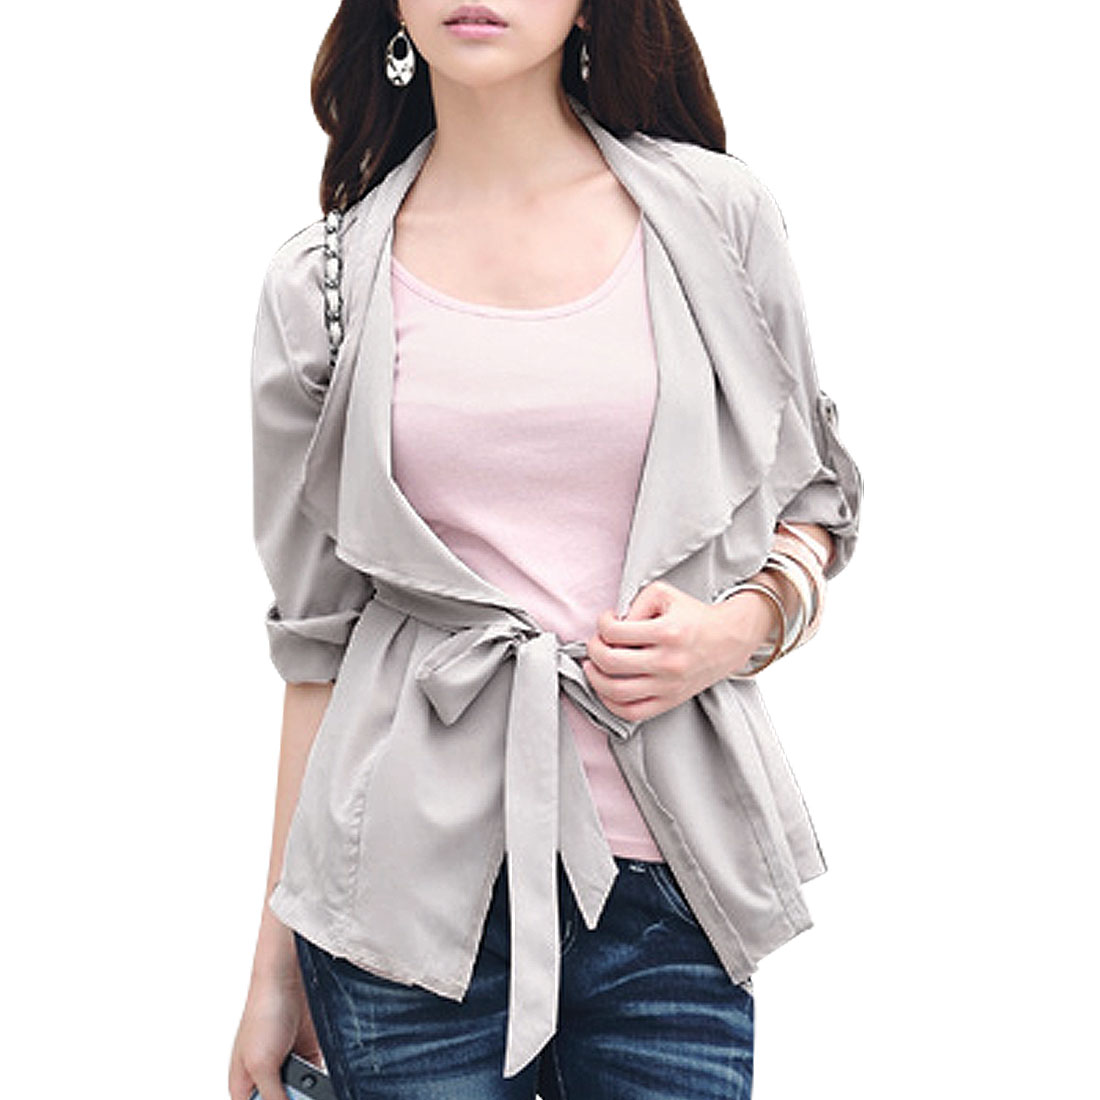 Gray S 3/4 Sleeve Draped Front Banded Fall Jacket Coat for Ladies